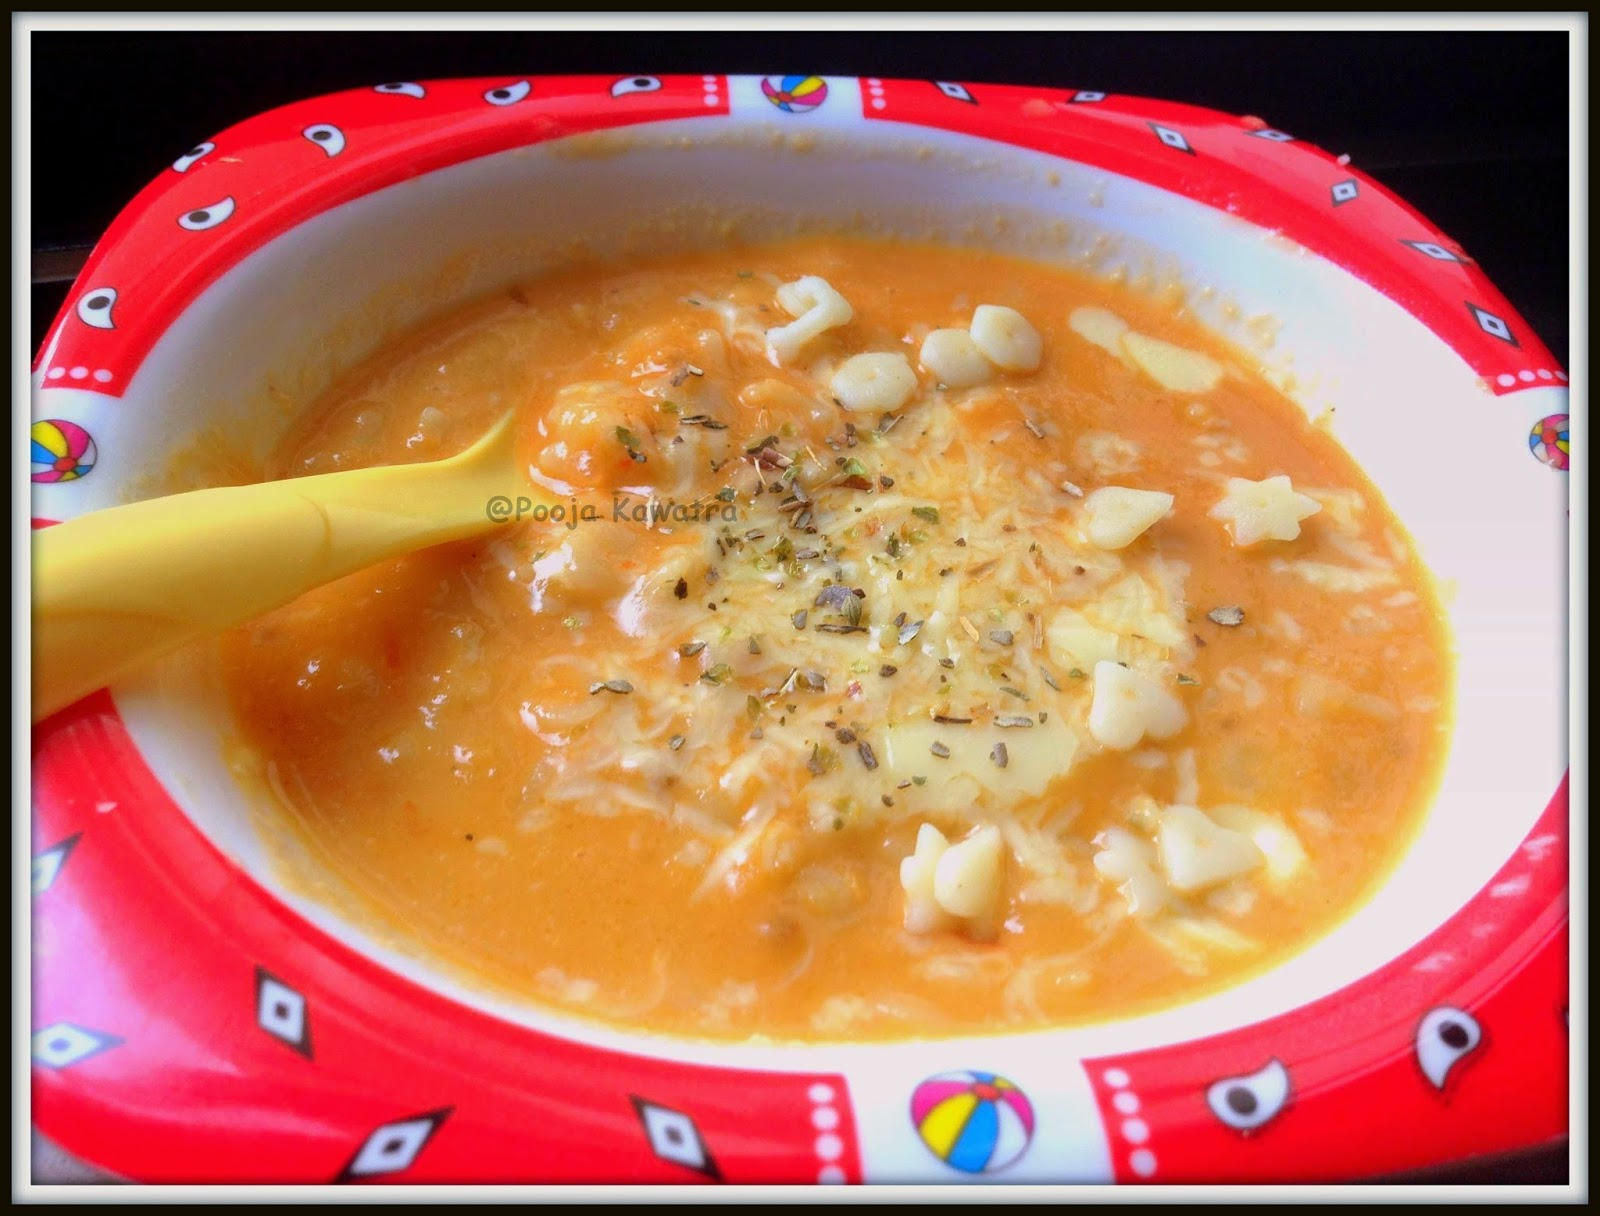 Pasta in tomato sauce and chicken stock baby recipe you can cook pasta in vegetable or chicken stock to make it healthy and flavourful too at the same time making it a hearty meal for my little one forumfinder Choice Image